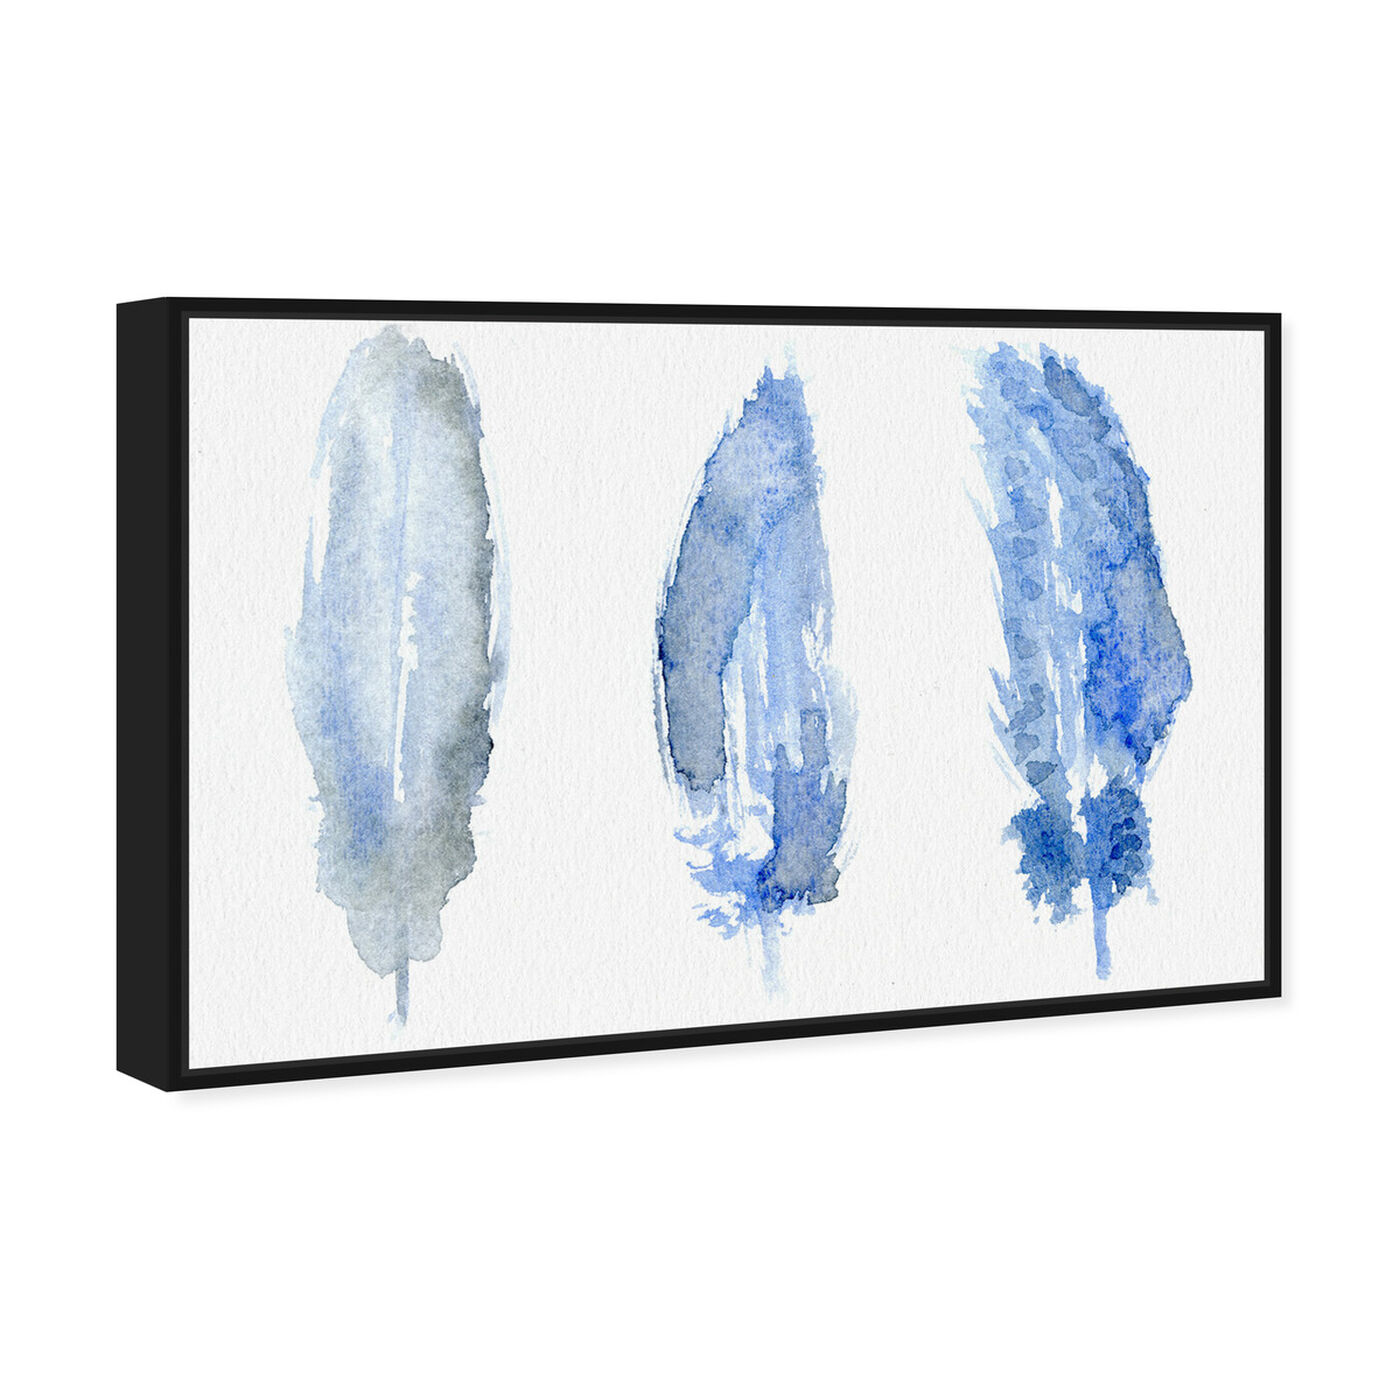 Angled view of Feathered - Signature Collection featuring abstract and shapes art.